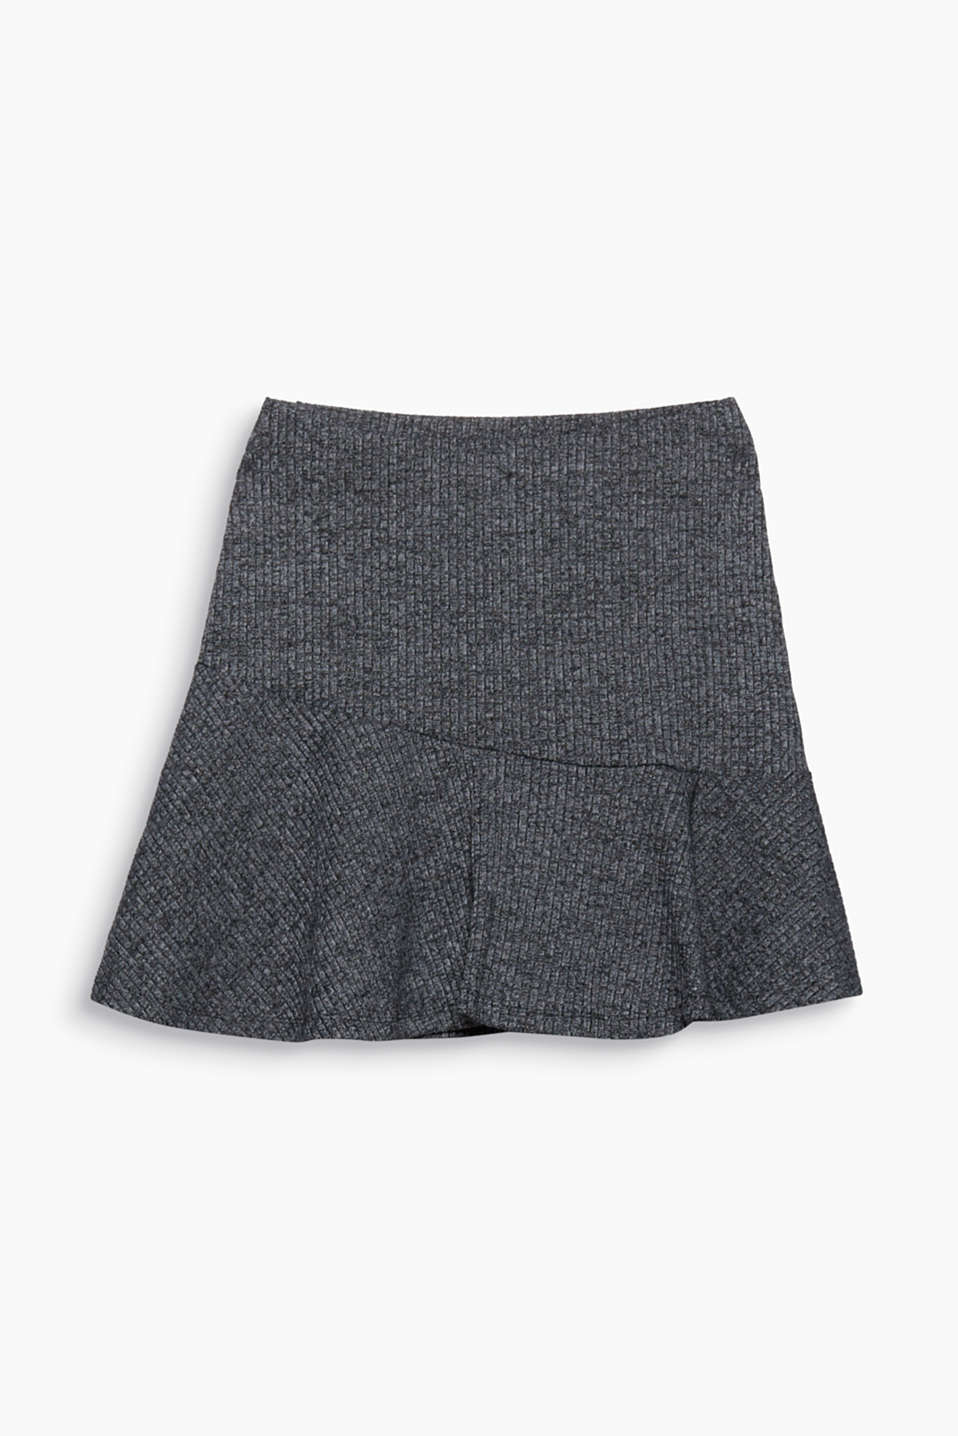 This simple jersey skirt with an elasticated waistband combines a melange ribbed texture with a pretty flounce hem.